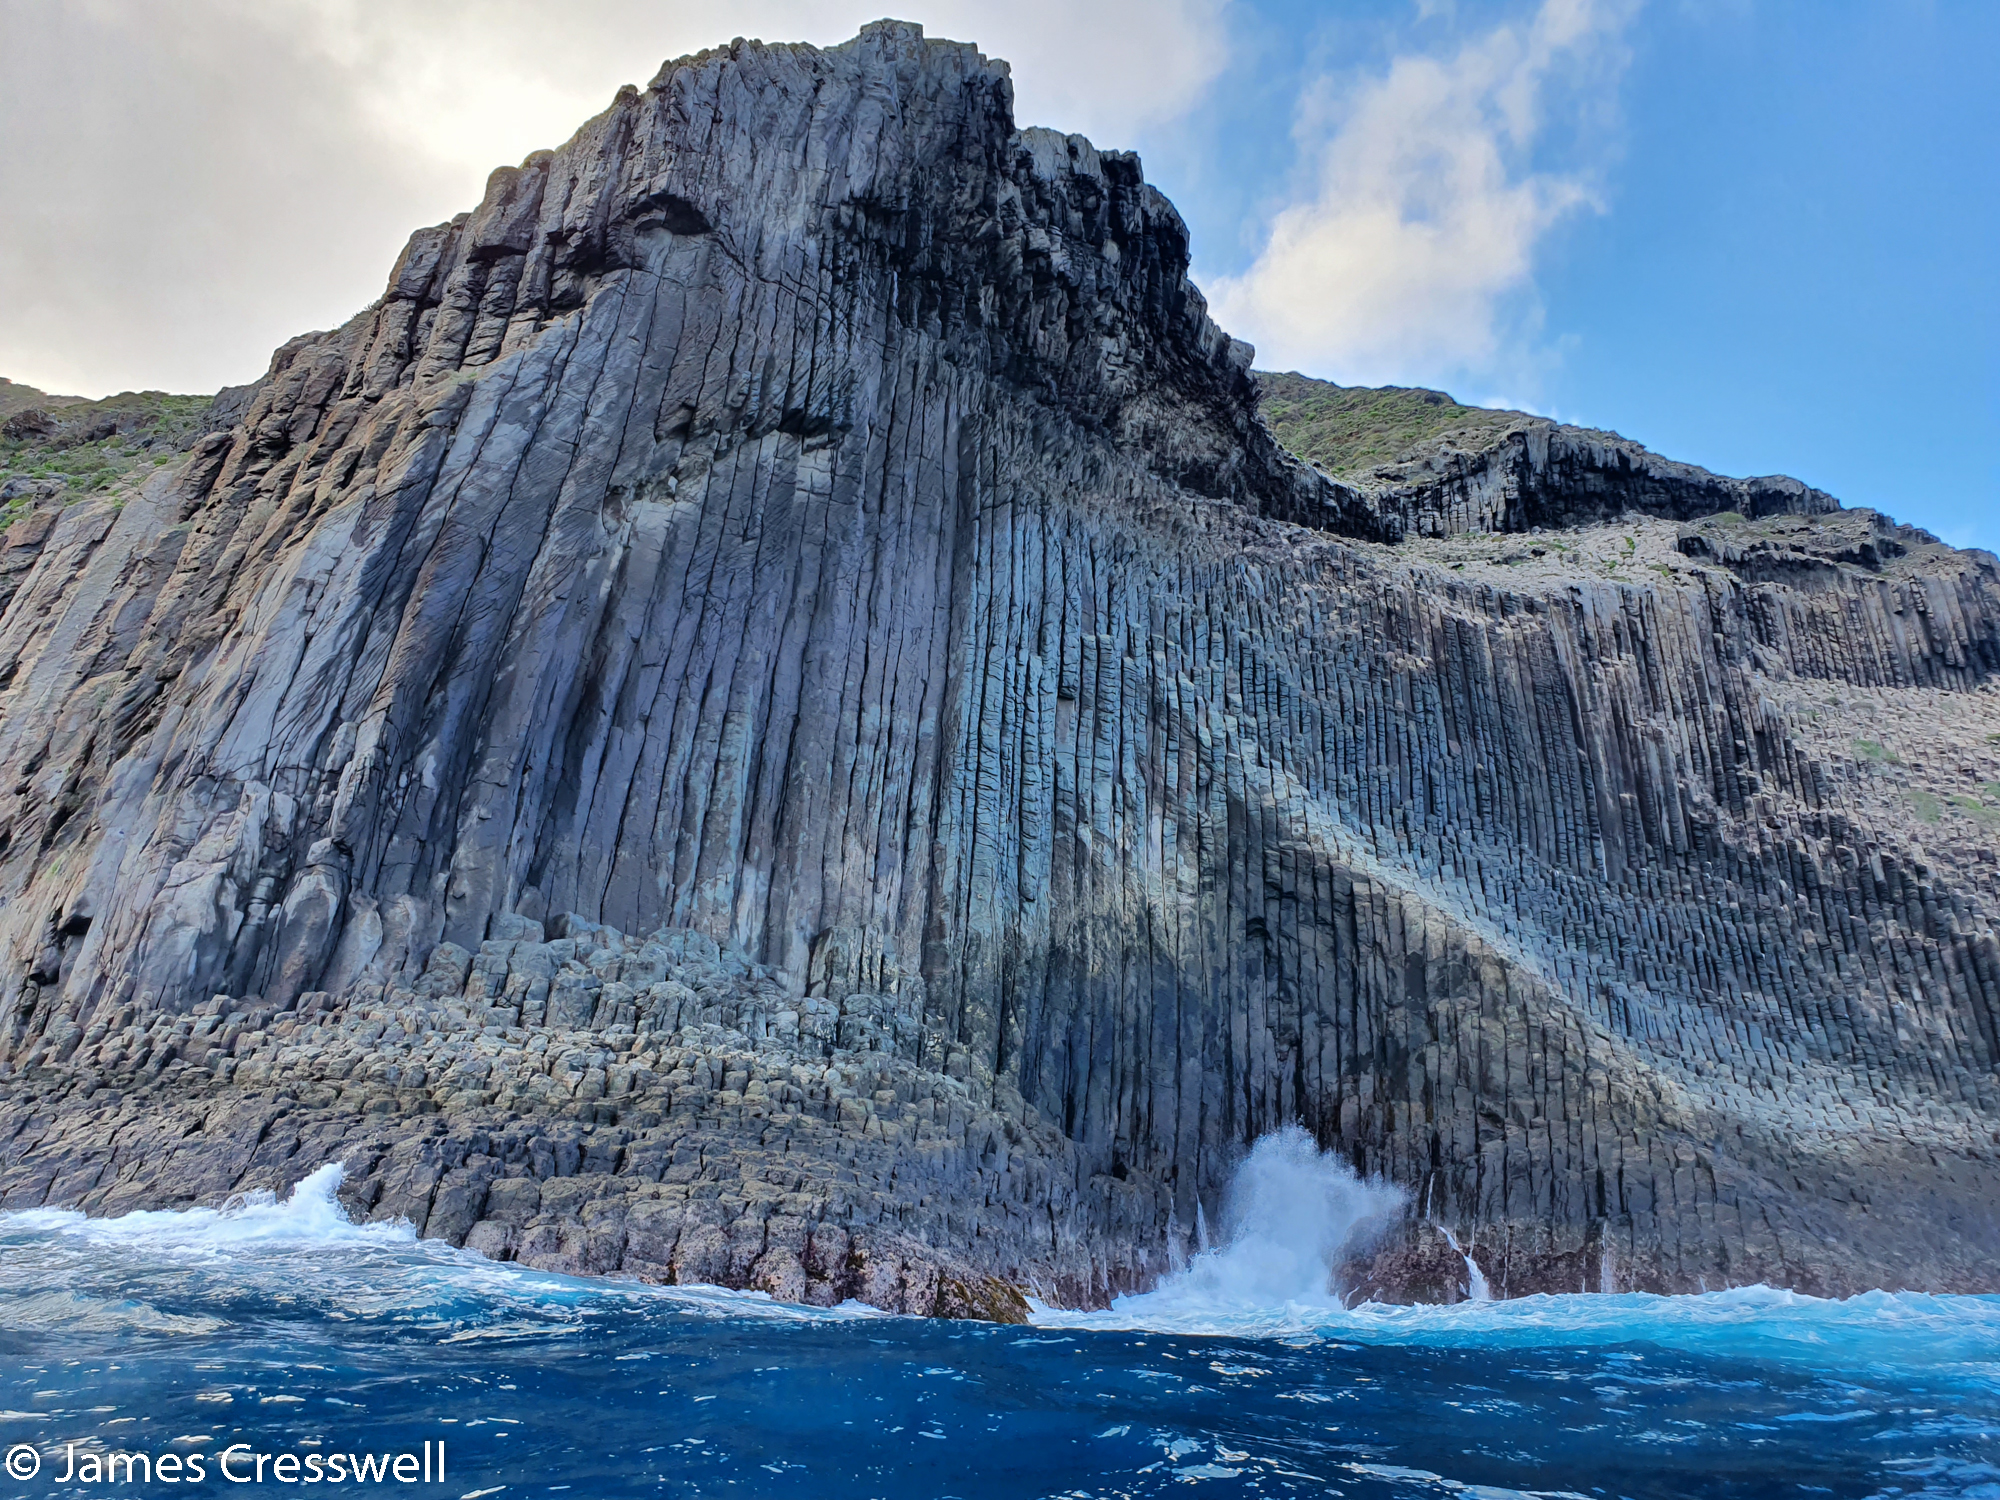 Sea cliff with geological formation